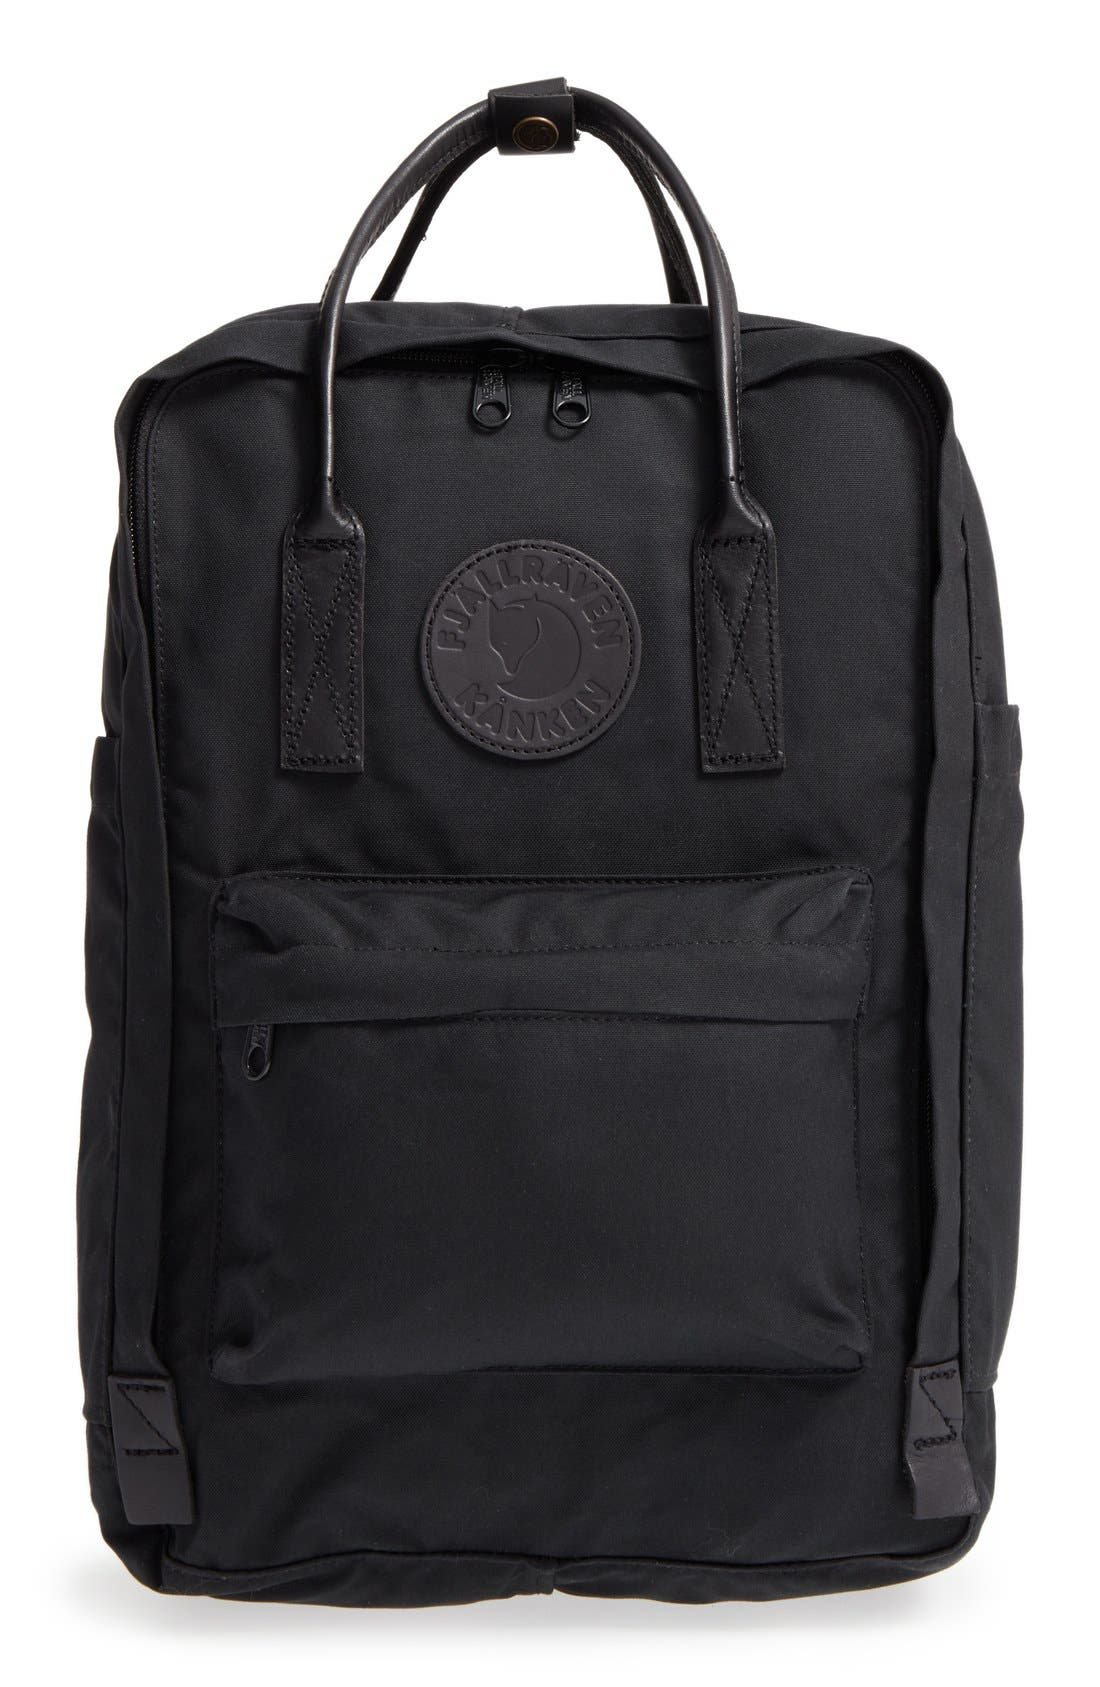 FJÄLLRÄVEN, Kånken No. 2 Laptop Backpack, Main thumbnail 1, color, 001